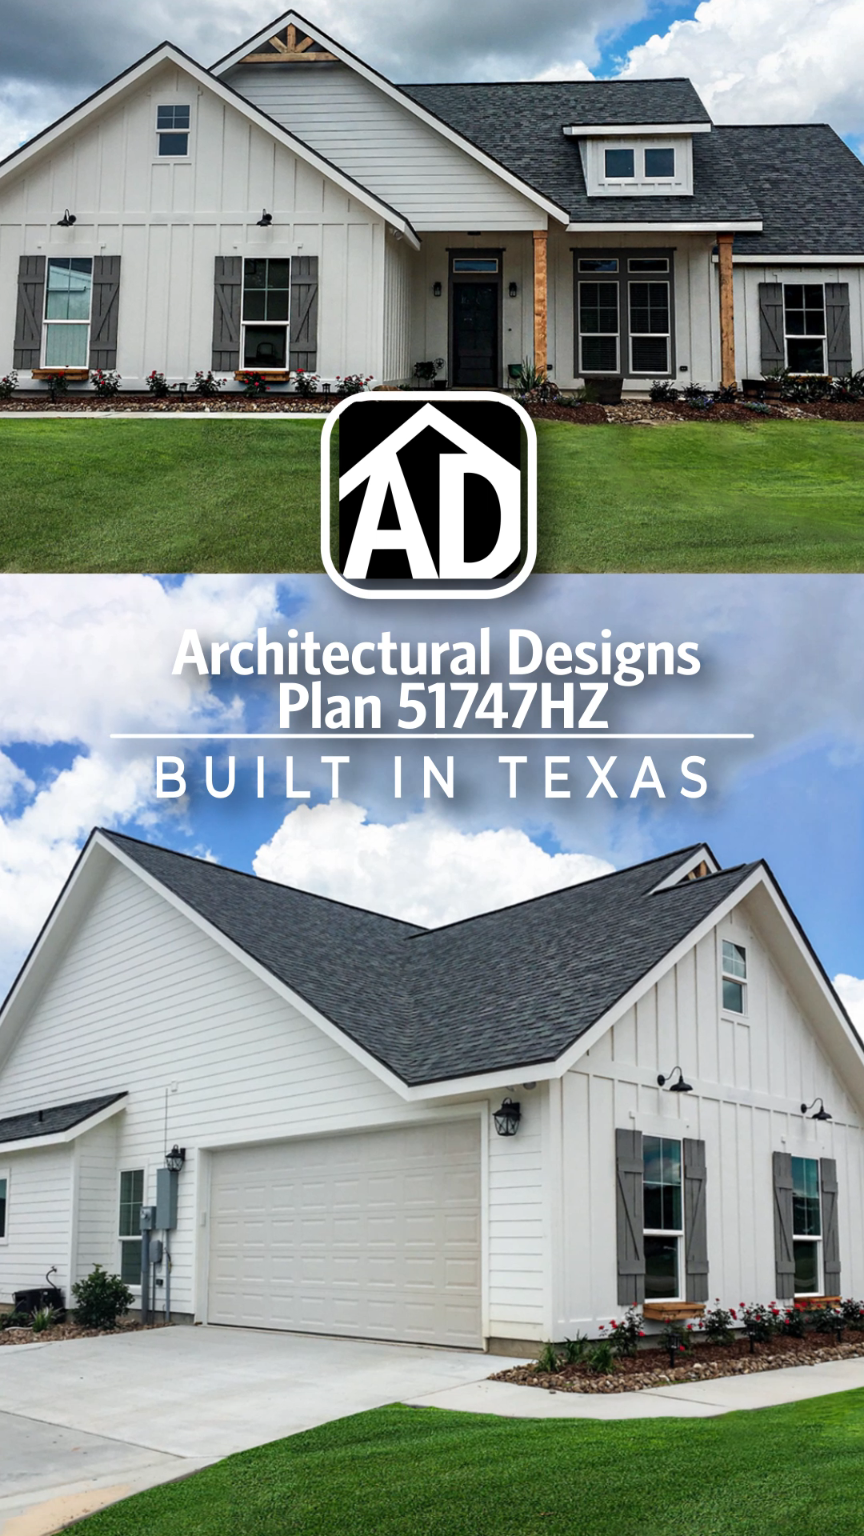 Architectural Designs House Plan 51747HZ client-built in Texas | 3 BR | 2 BA | 1,600+ sq. ft.| Ready when you are. Where do YOU want to build?  #51747HZ #architecturaldesigns #adhouseplans #houseplan #architecture #newhome #newconstruction #newhouse #homedesign #dreamhome #dreamhouse #homeplan #architecture #architect #housegoals #client-built #client #southern #home #house #farmhouse #modernfarmhouse #modernfarmhouseexterior